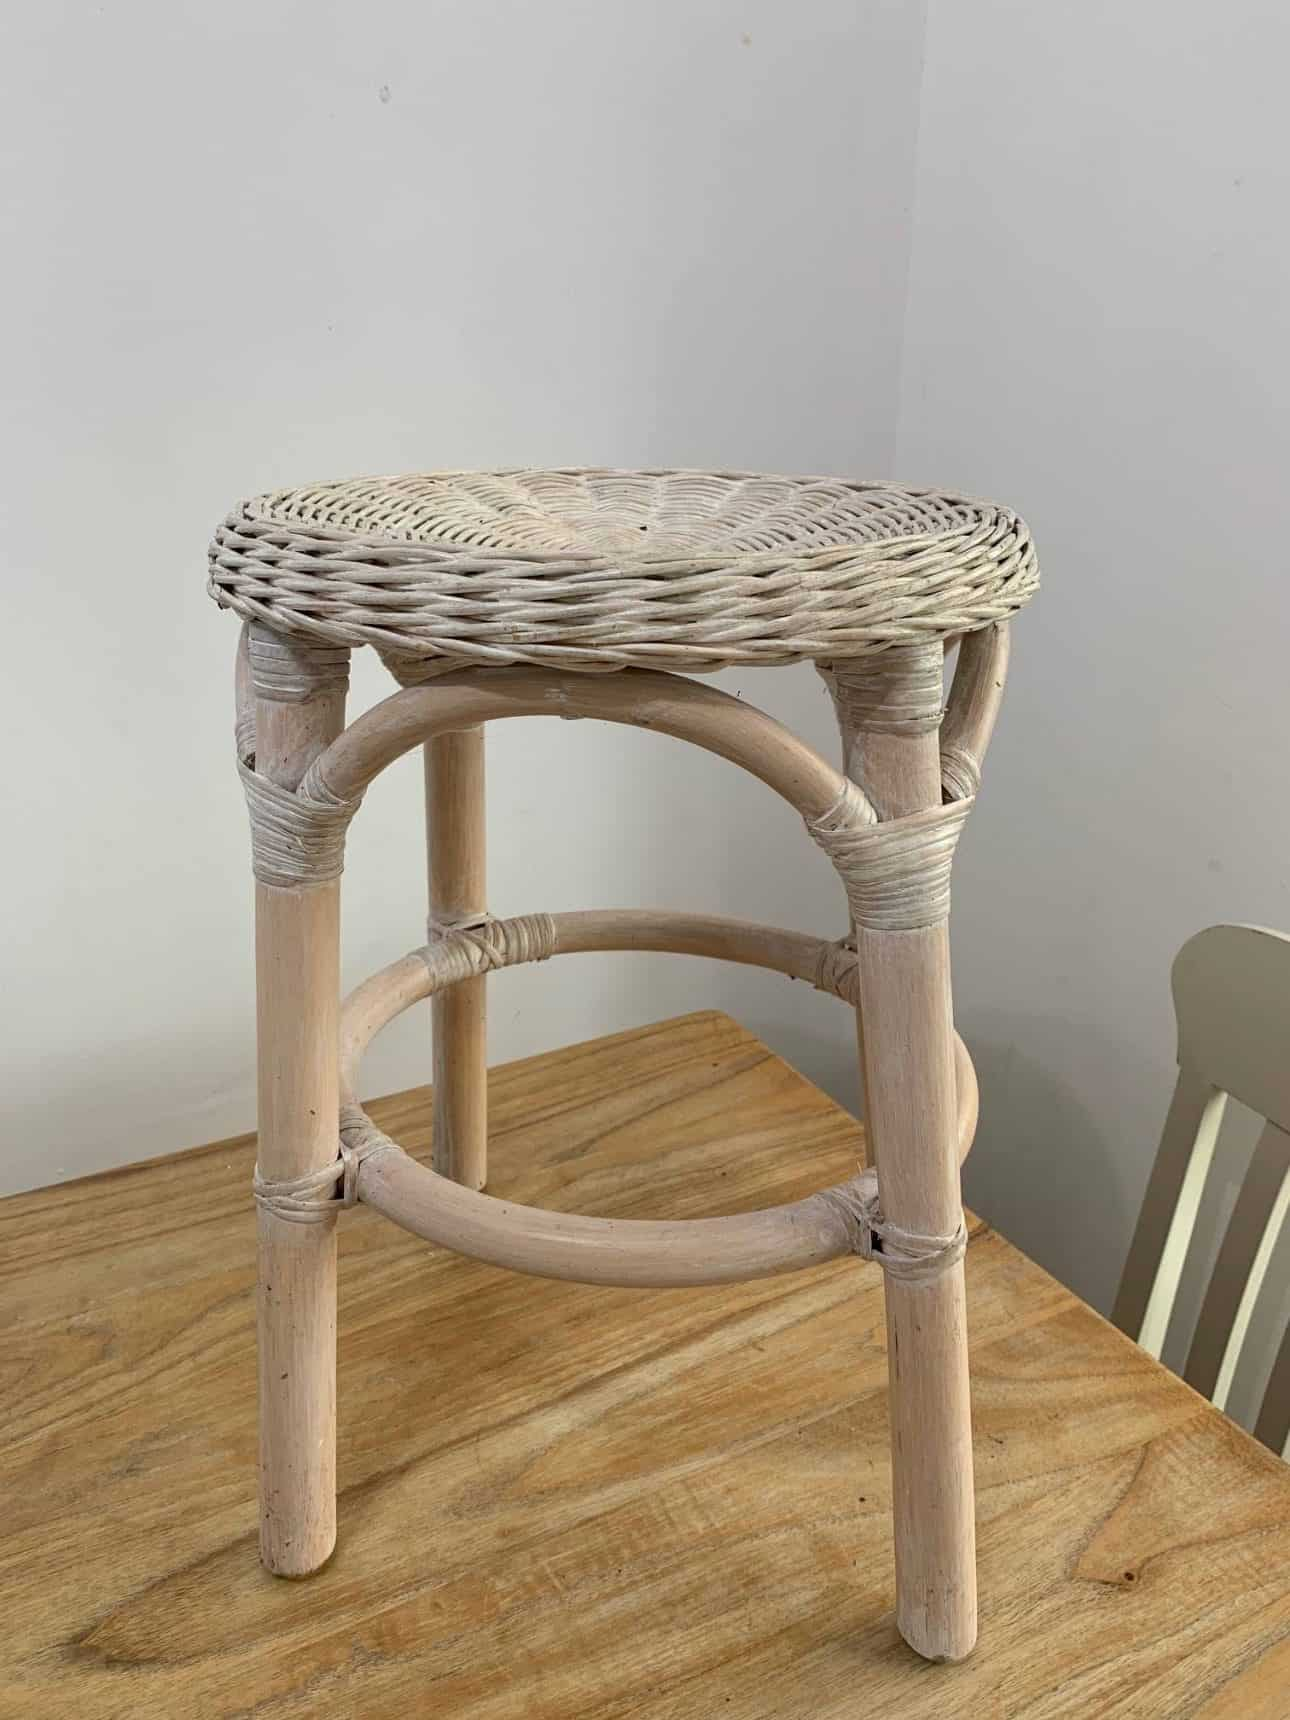 How to upcycle a wicker stool